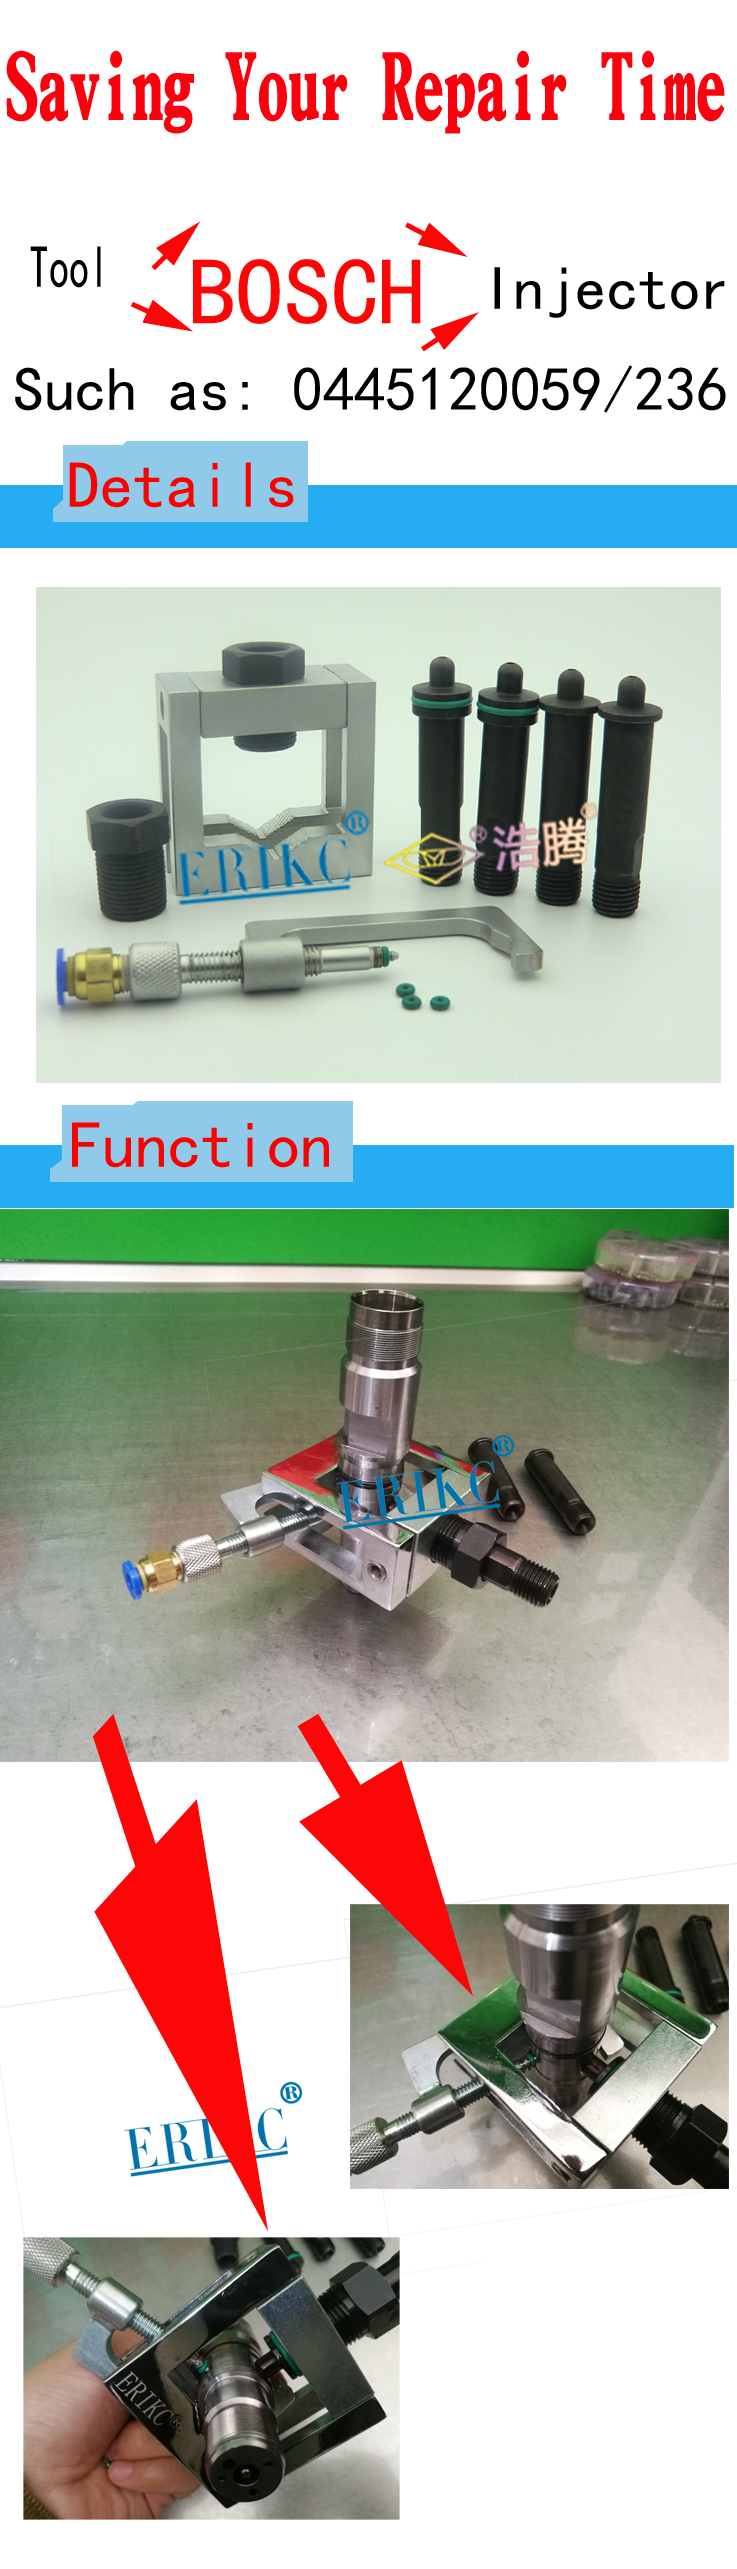 ERIKC adapter cr injector tool Diesel Common rail tools